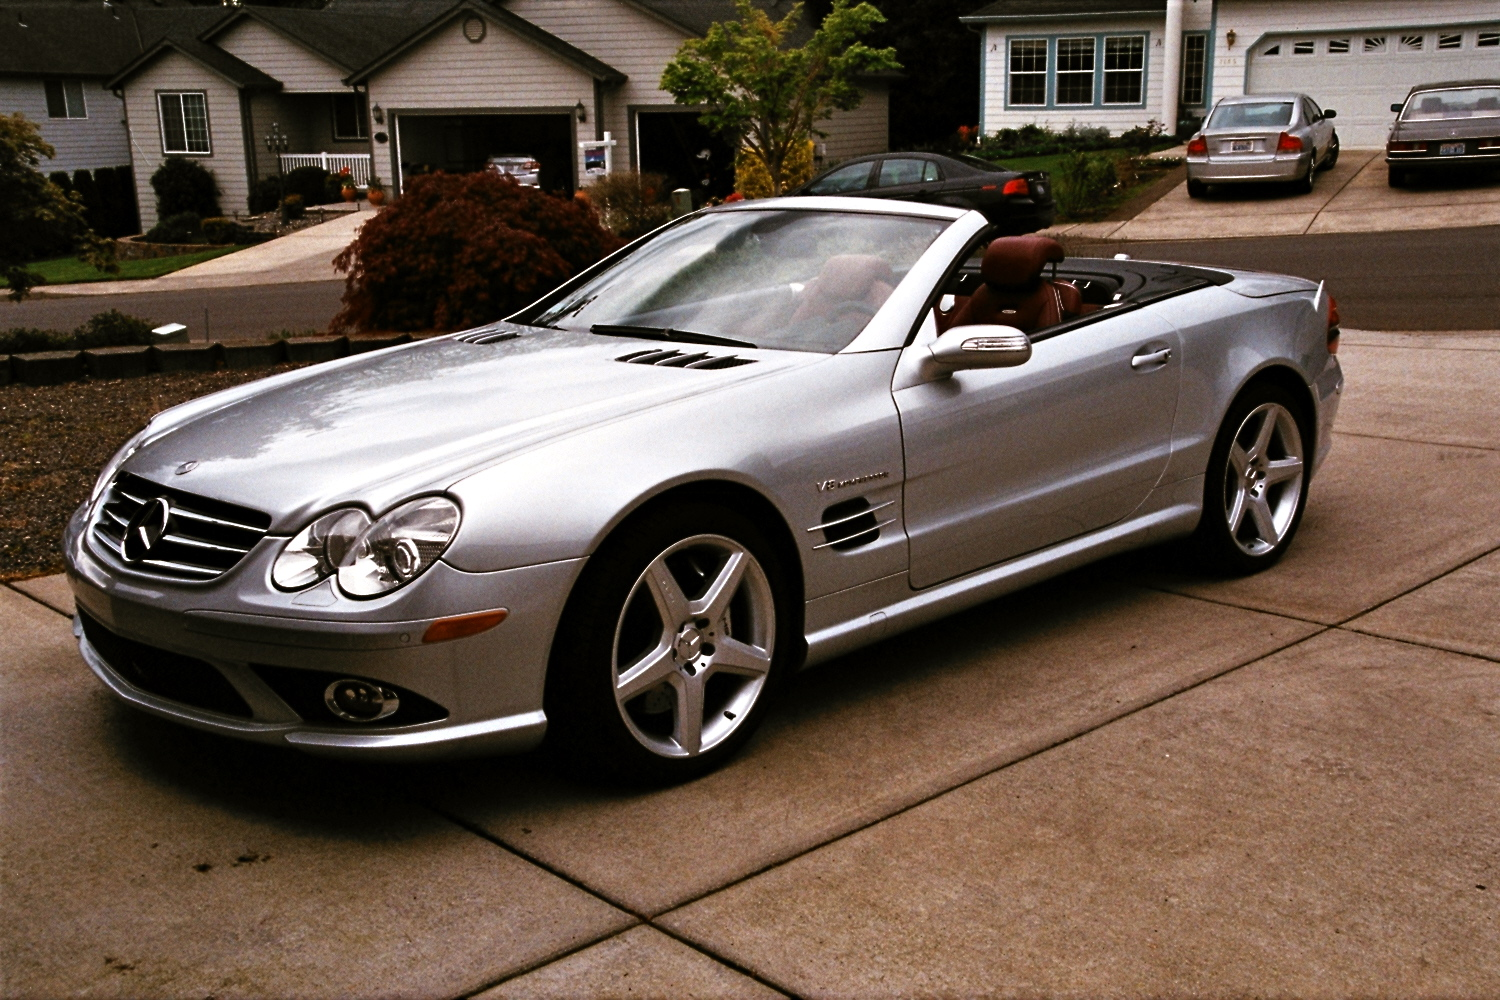 2007 mercedes benz sl class pictures cargurus for 2007 mercedes benz sl500